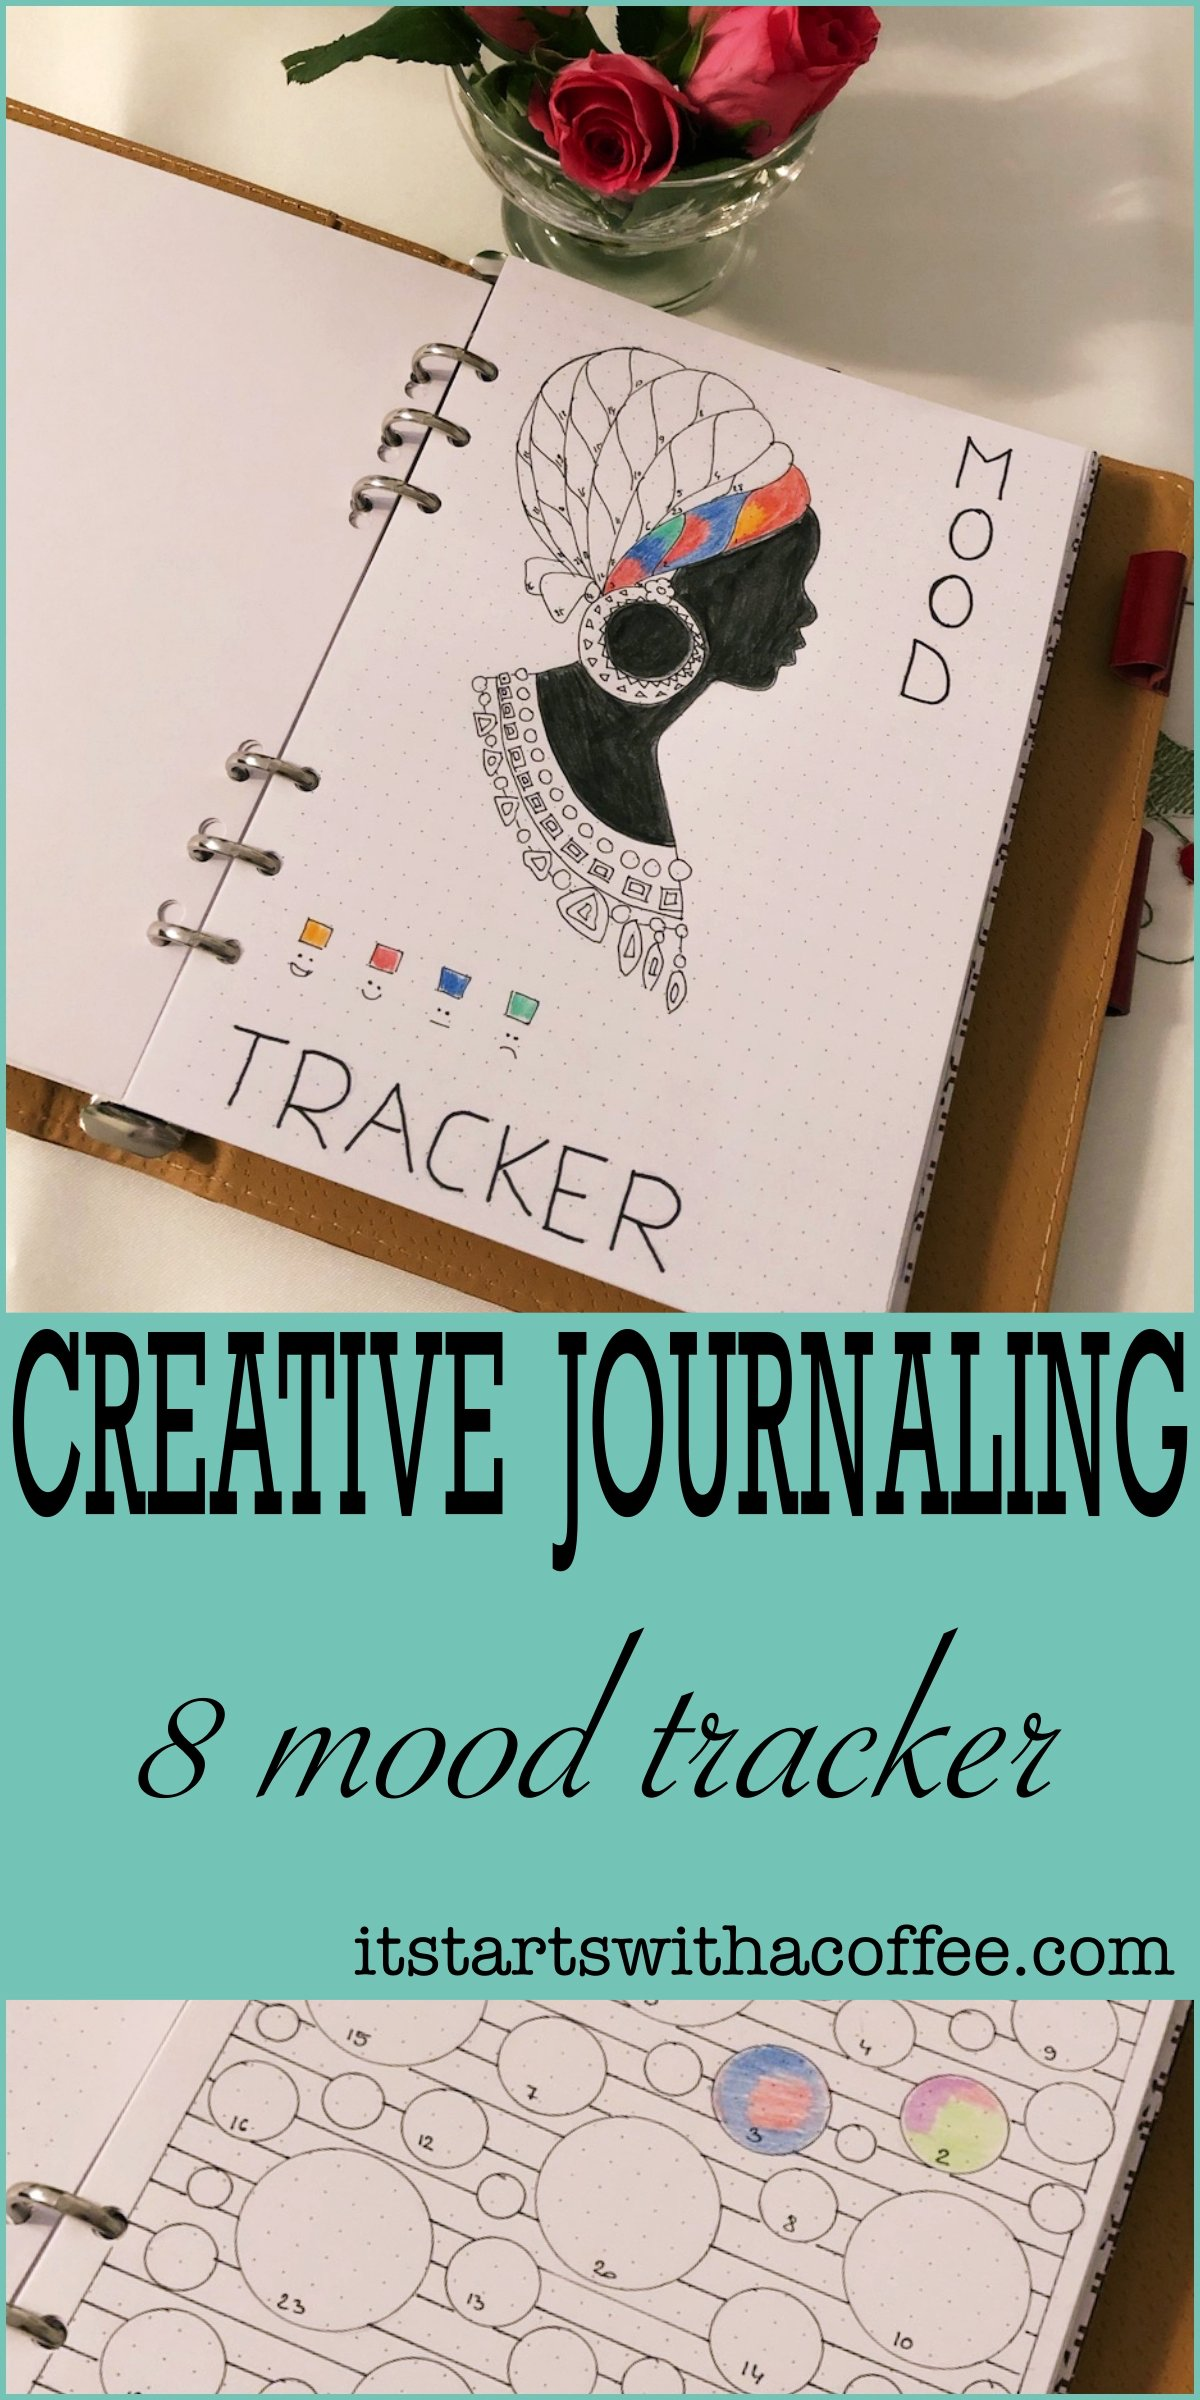 8 Mood trackers - itstartswithacoffee.com #moodtracker #tracker #journaling #planning #creativejournal #creativejournaling